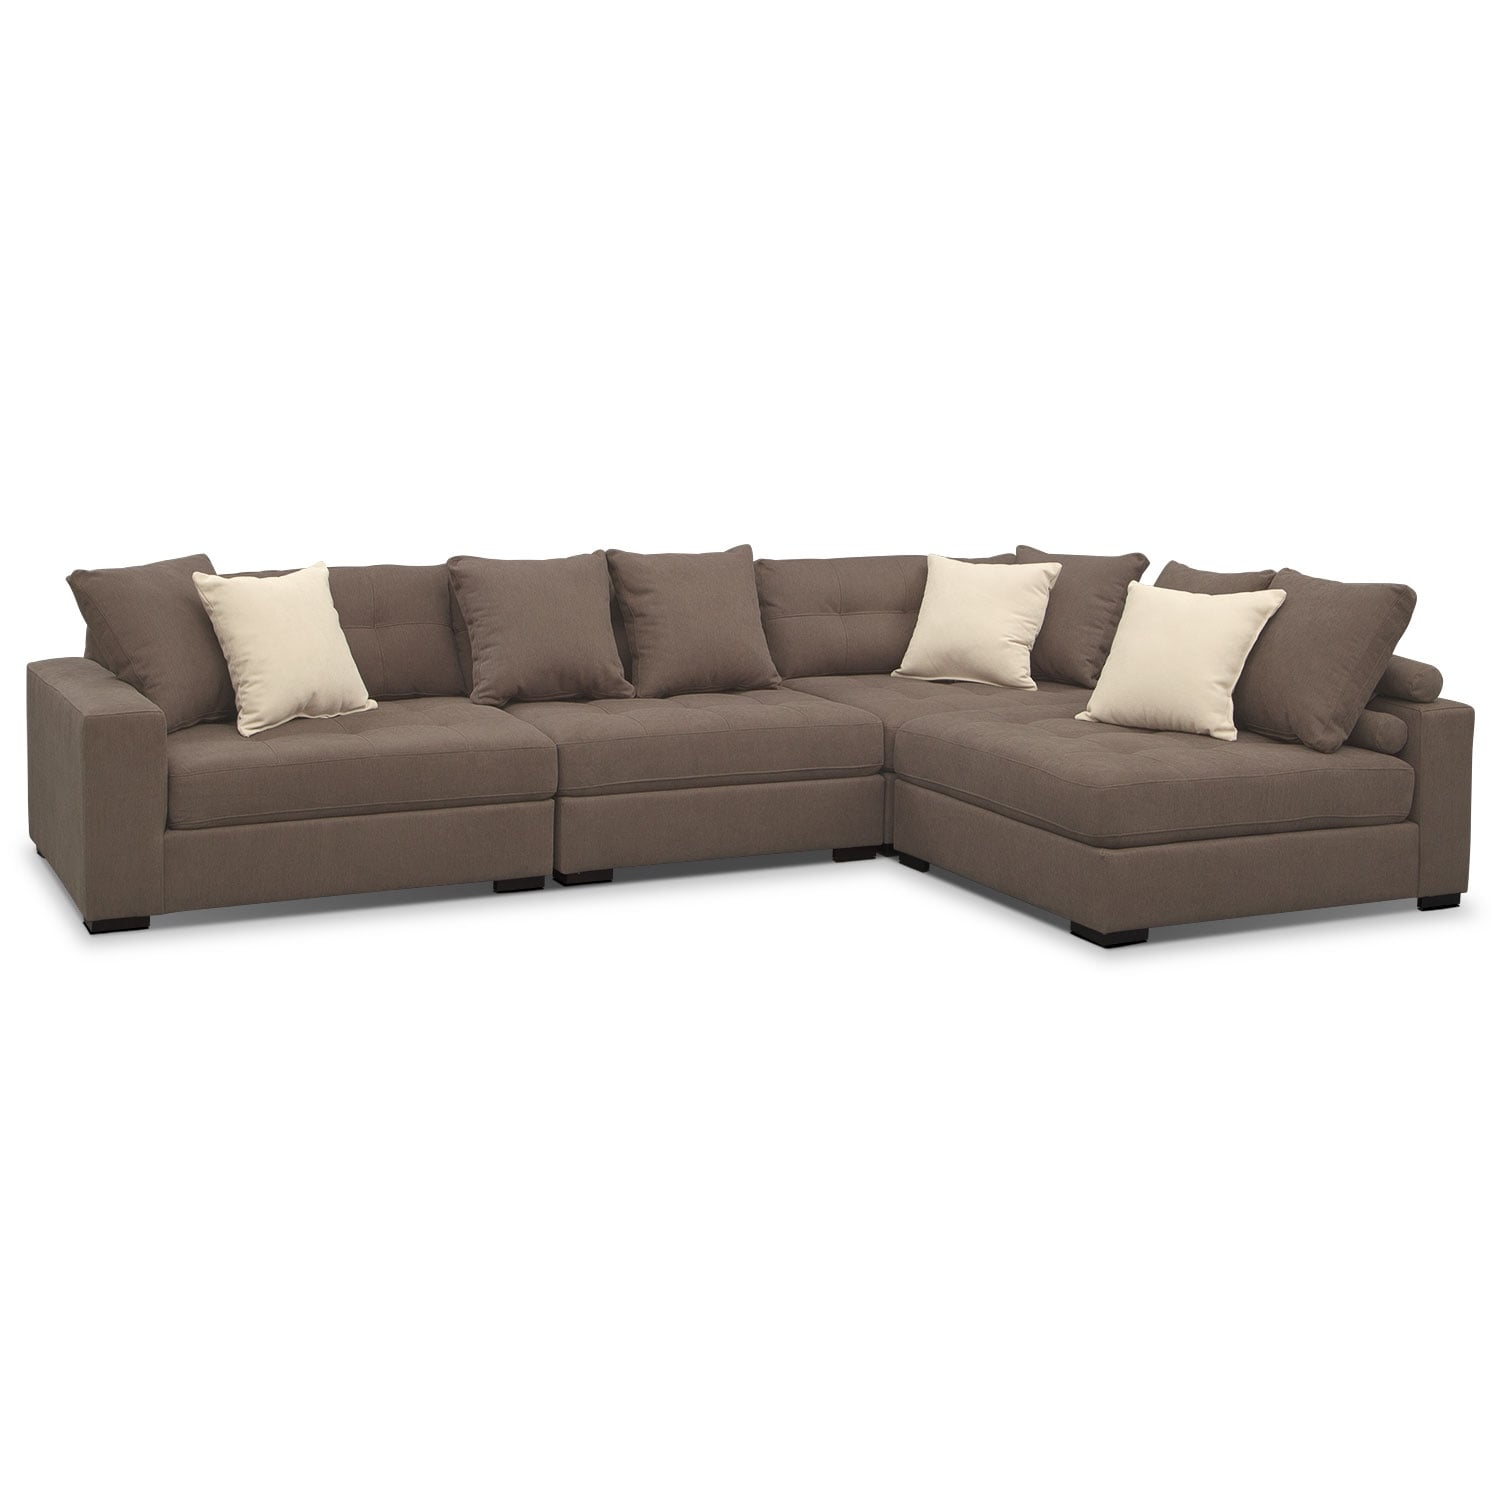 Living Room Furniture - Venti 4-Piece Sectional